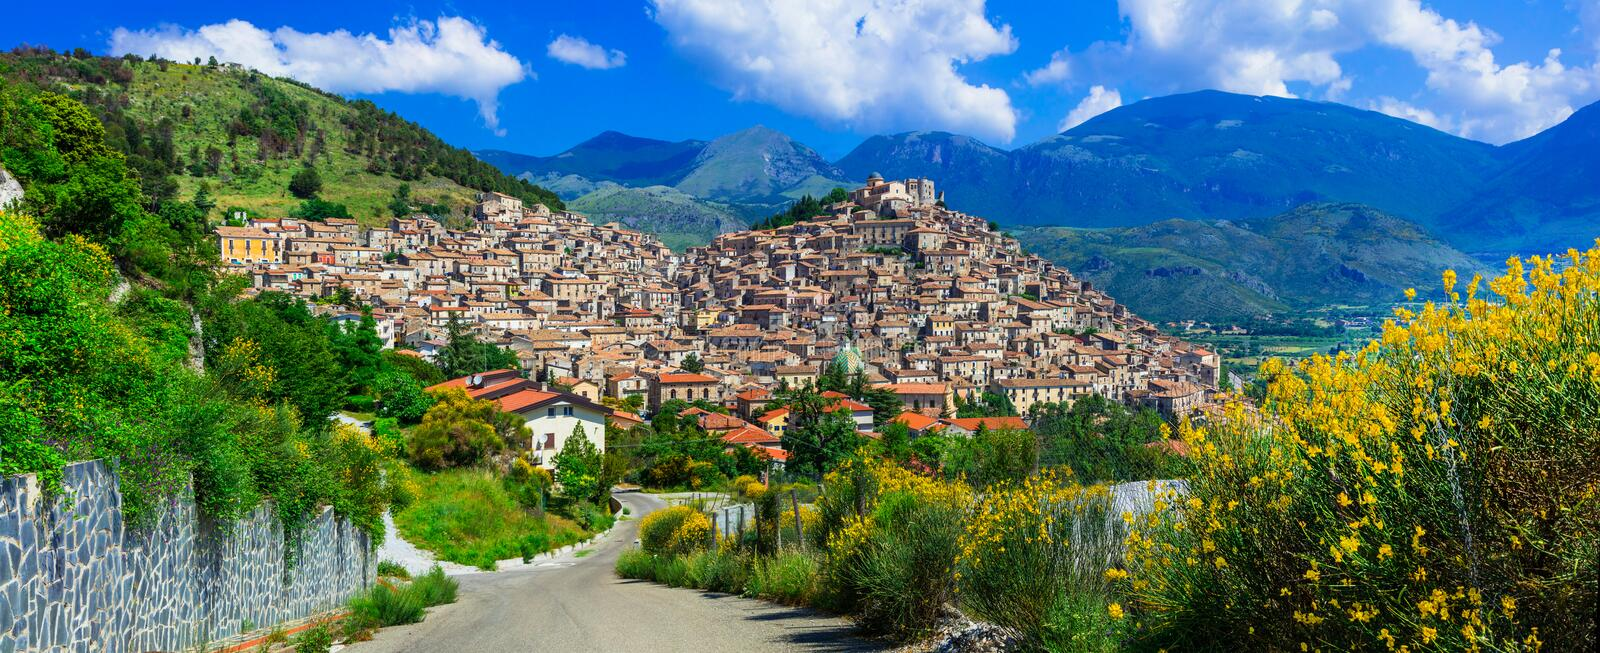 Impressive Morano calabro village,view with hoiuses and mountains,Calabria,Italy. Beautiful Morano Calabro village,panoramic view,Calabria,Italy royalty free stock photography